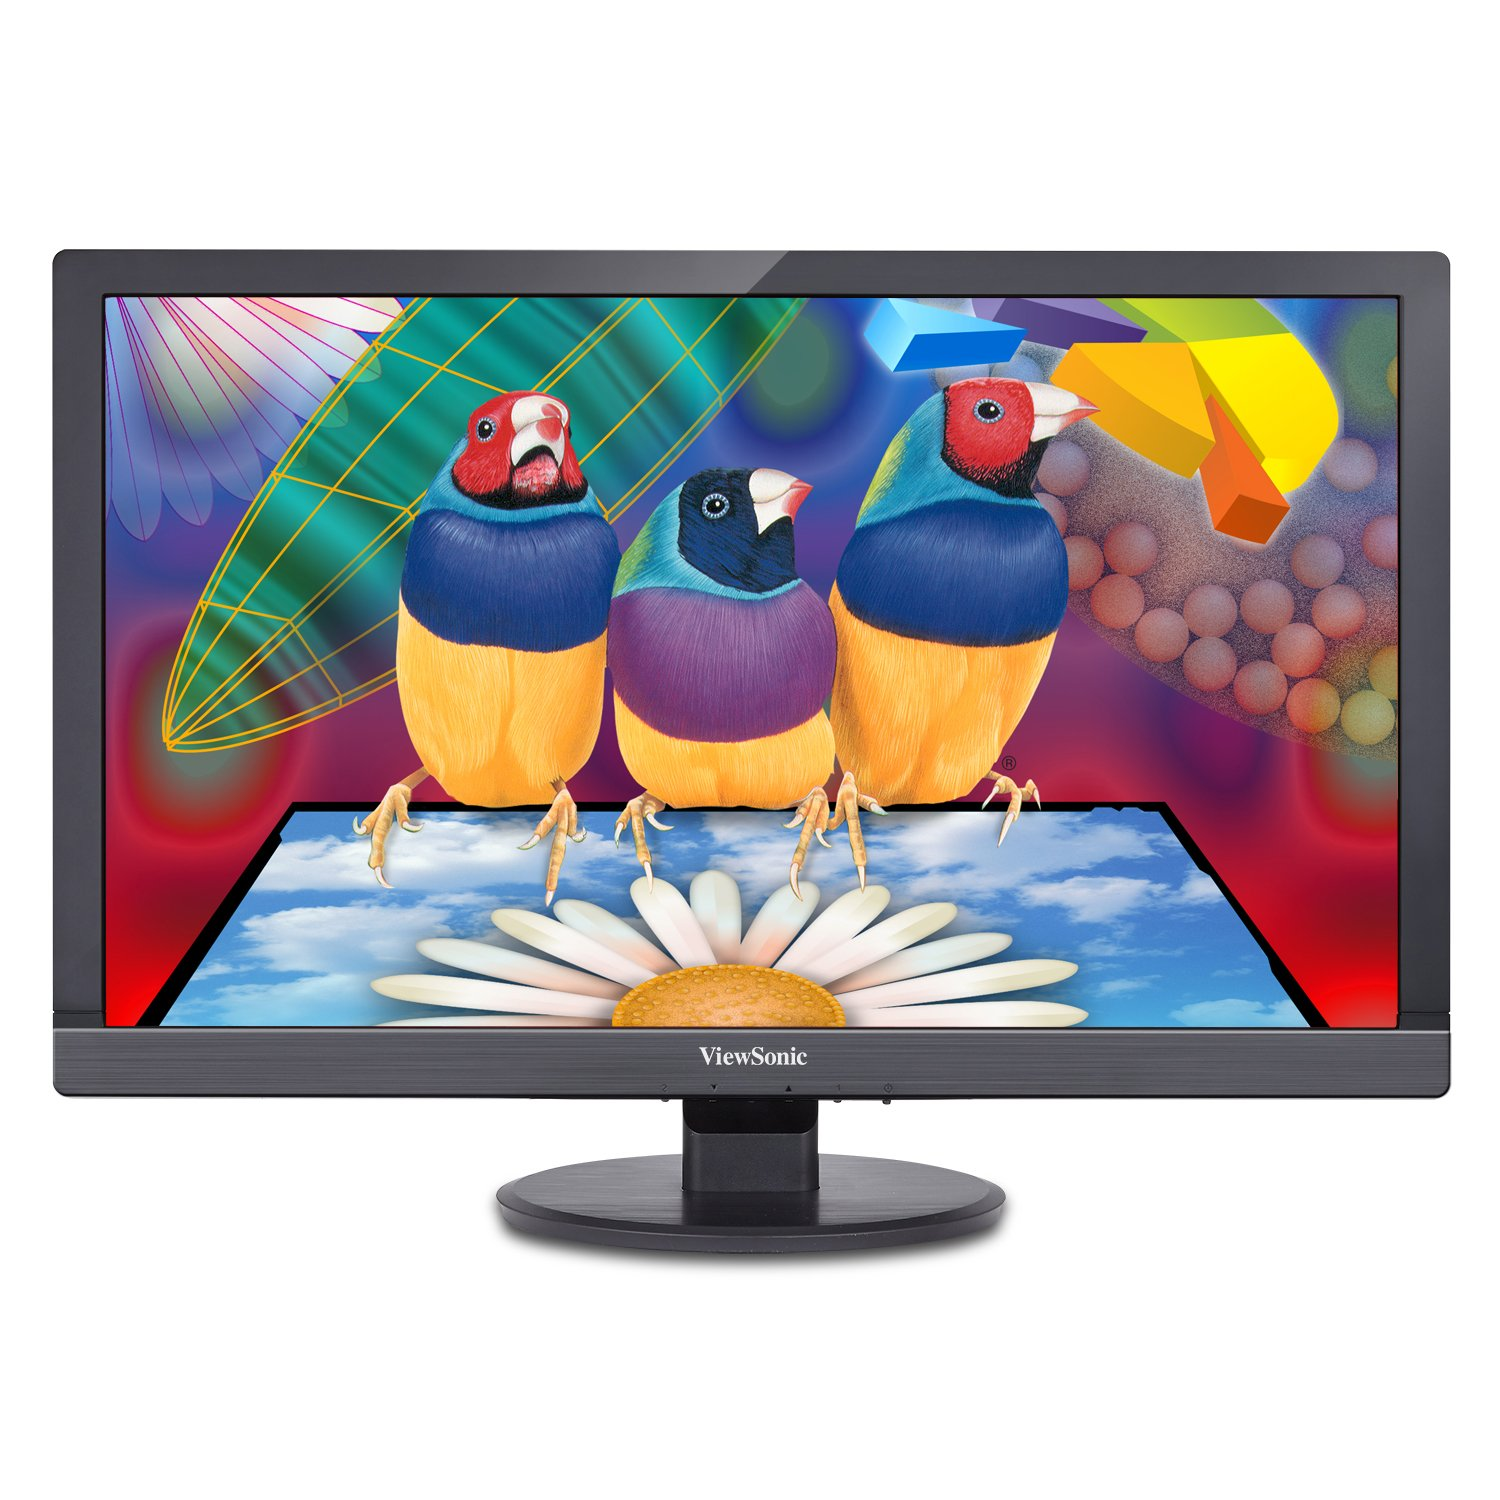 ViewSonic VA2455sm 24-Inch SuperClear Pro LED-Lit Monitor (Full HD, True 8-bit, Flicker-Free, ViewMode)